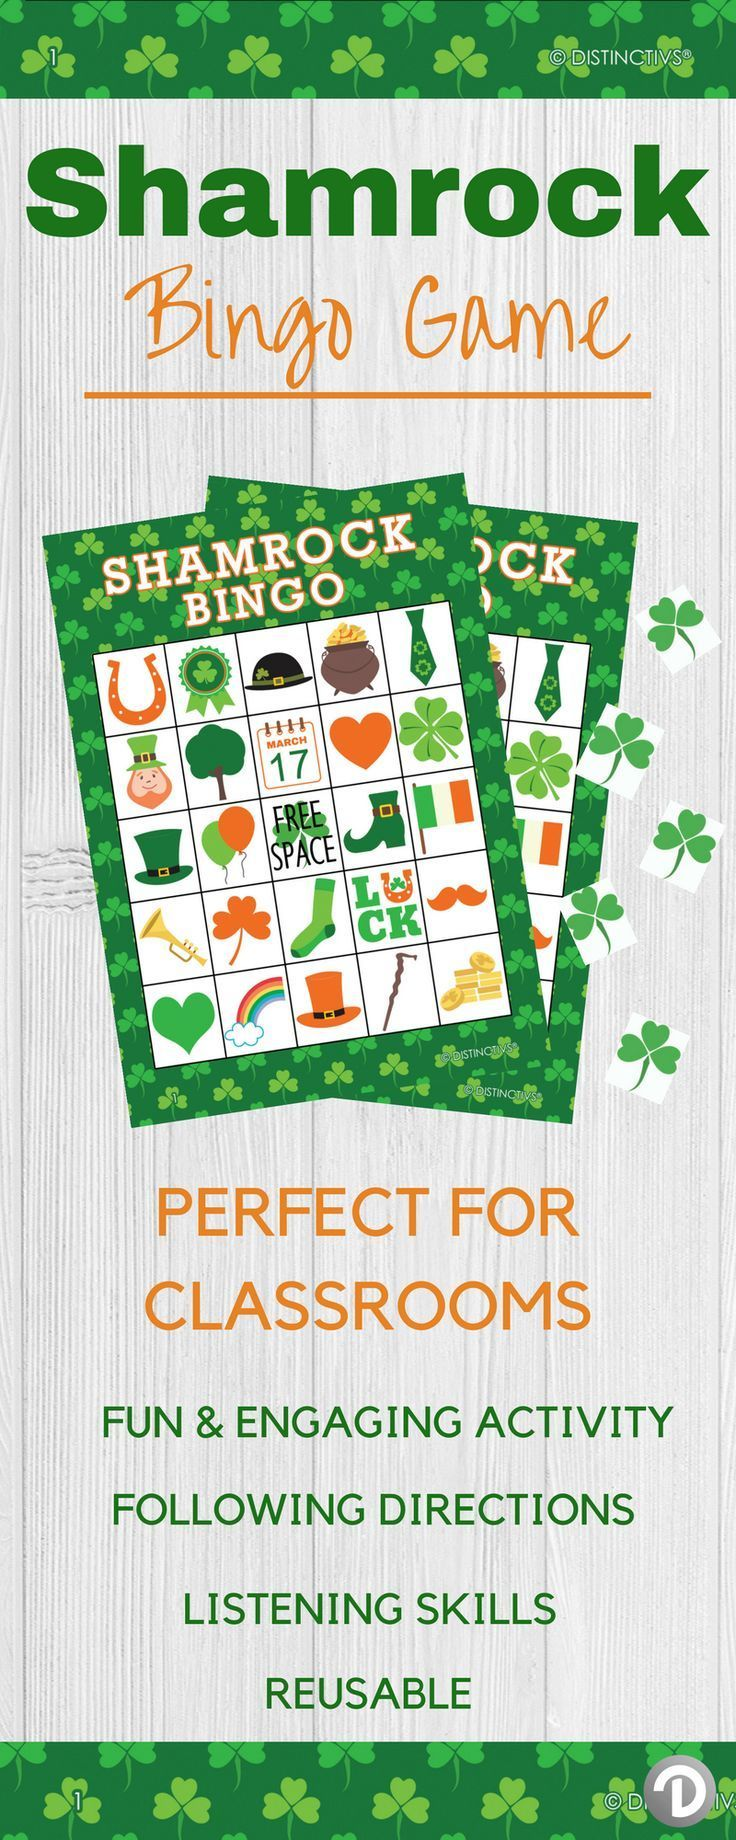 This fun activity is perfect for School St Patty's Day.Reusableso Every Class Can Play - and Save for Next Year! #stpatricksbingo #bingogame #stpattys